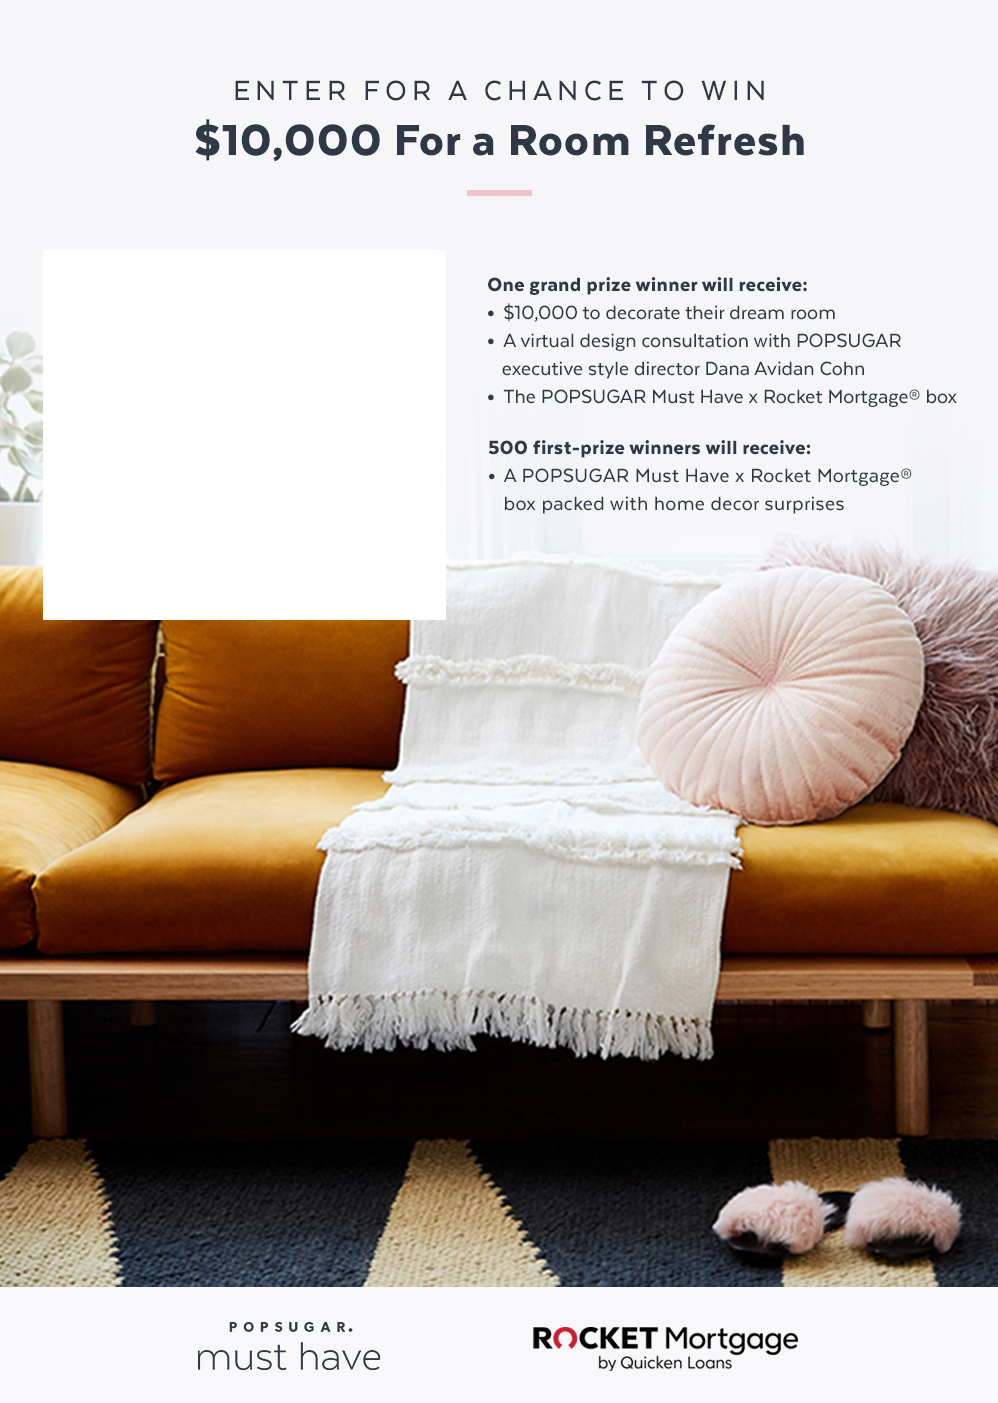 Enter For a Chance to Win $10,000 For a Room Refresh